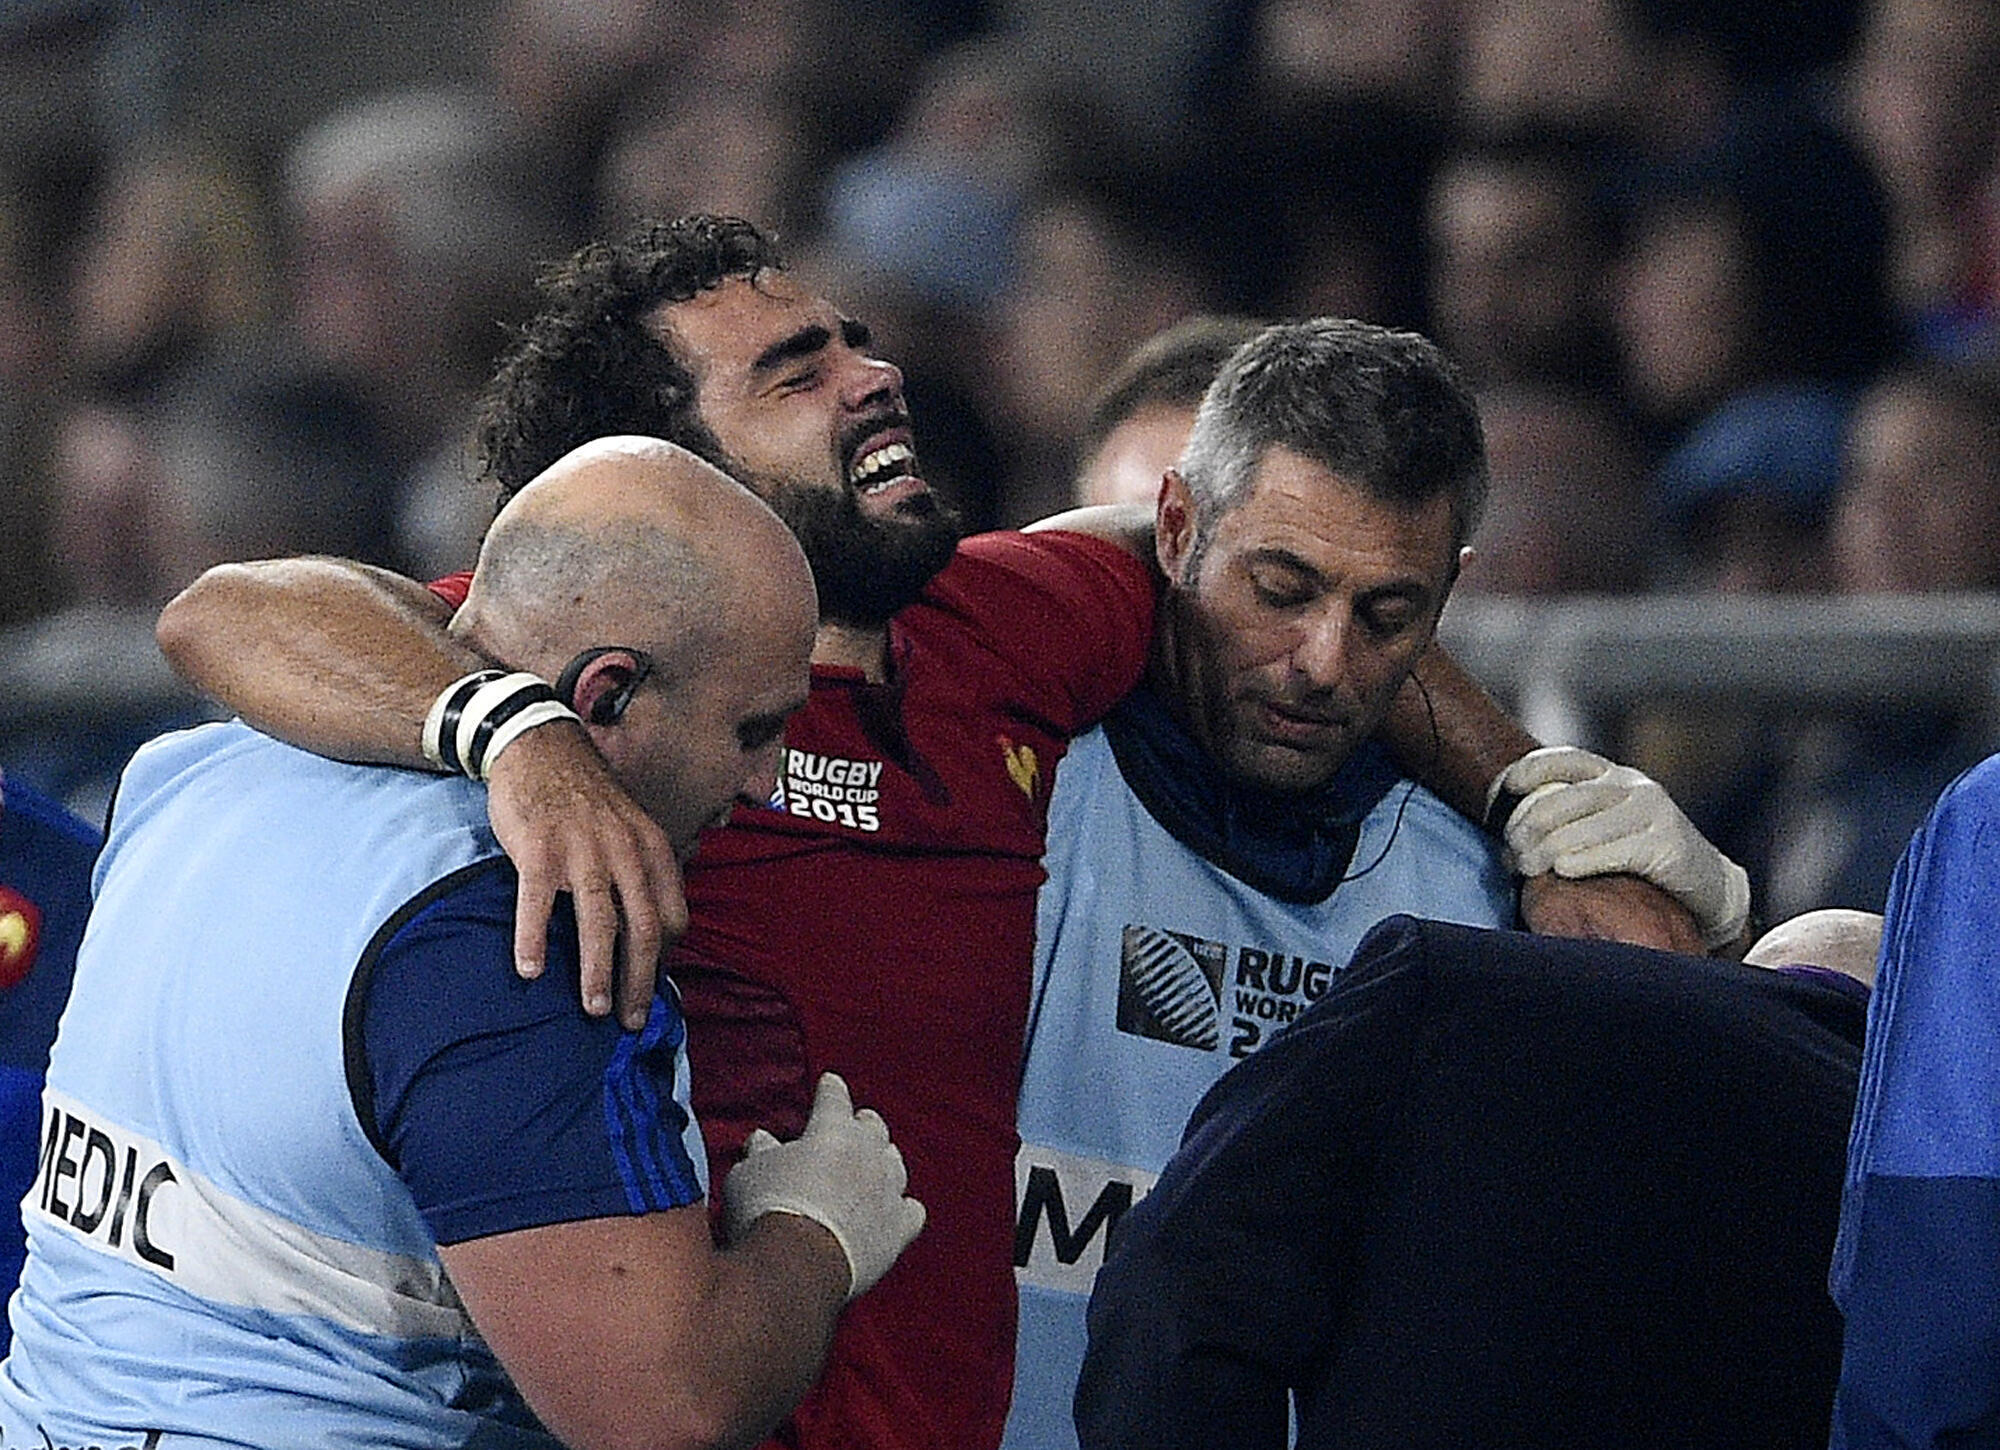 Yoann Huget was forced off after 56 minutes of Saturday's match at Twickenham